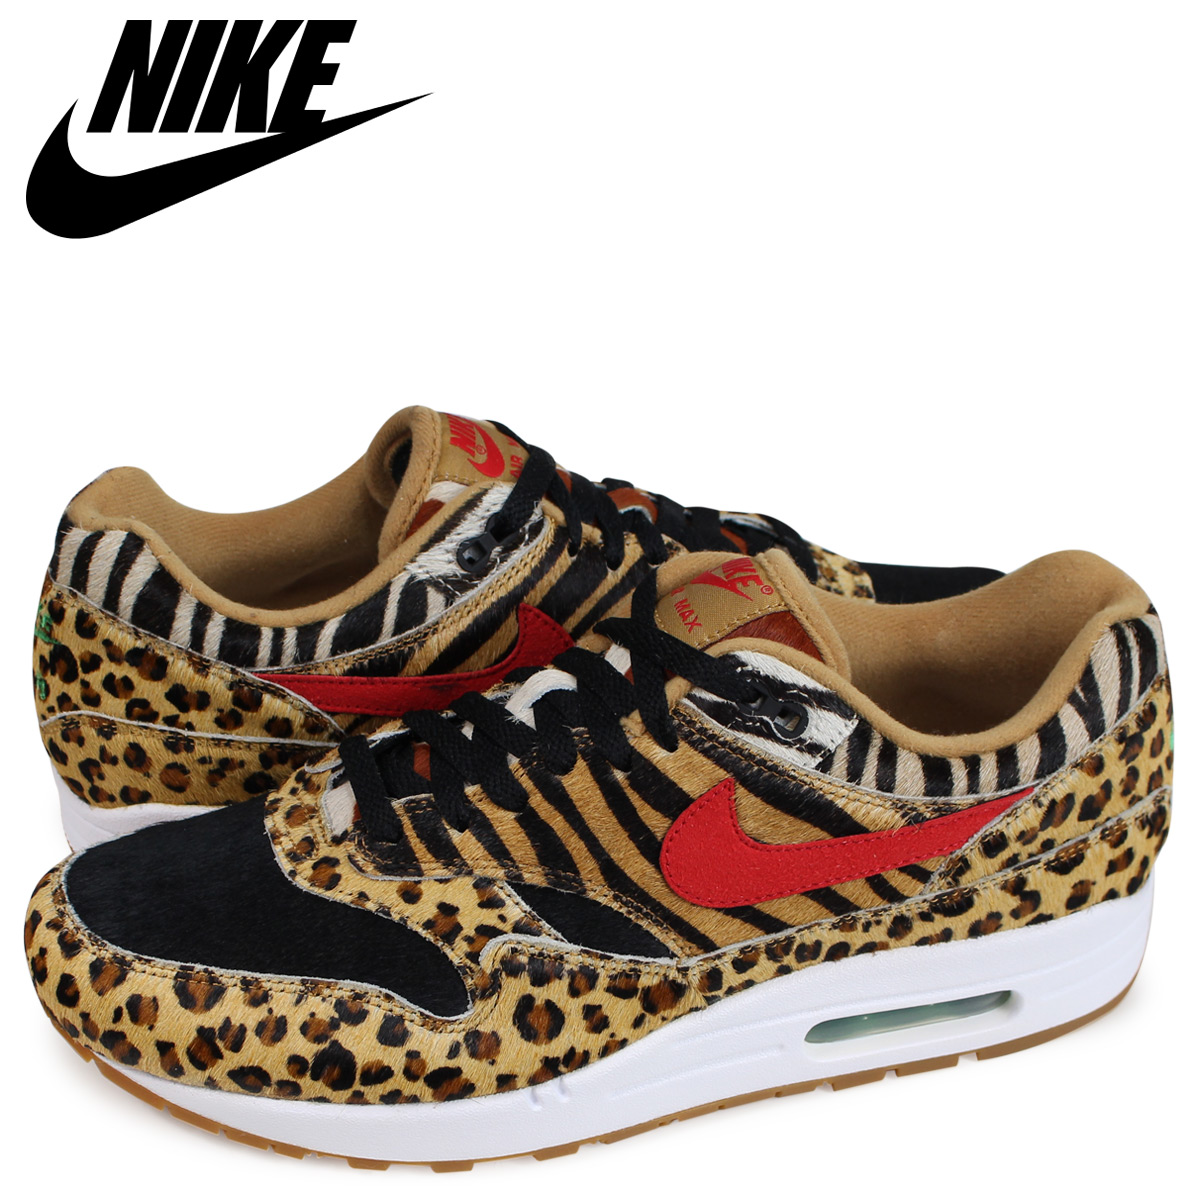 NIKE AIR MAX 1 DLX ANIMAL PACK Kie Ney AMAX 1 sneakers men AQ0928-700 ウィート 28b54433f